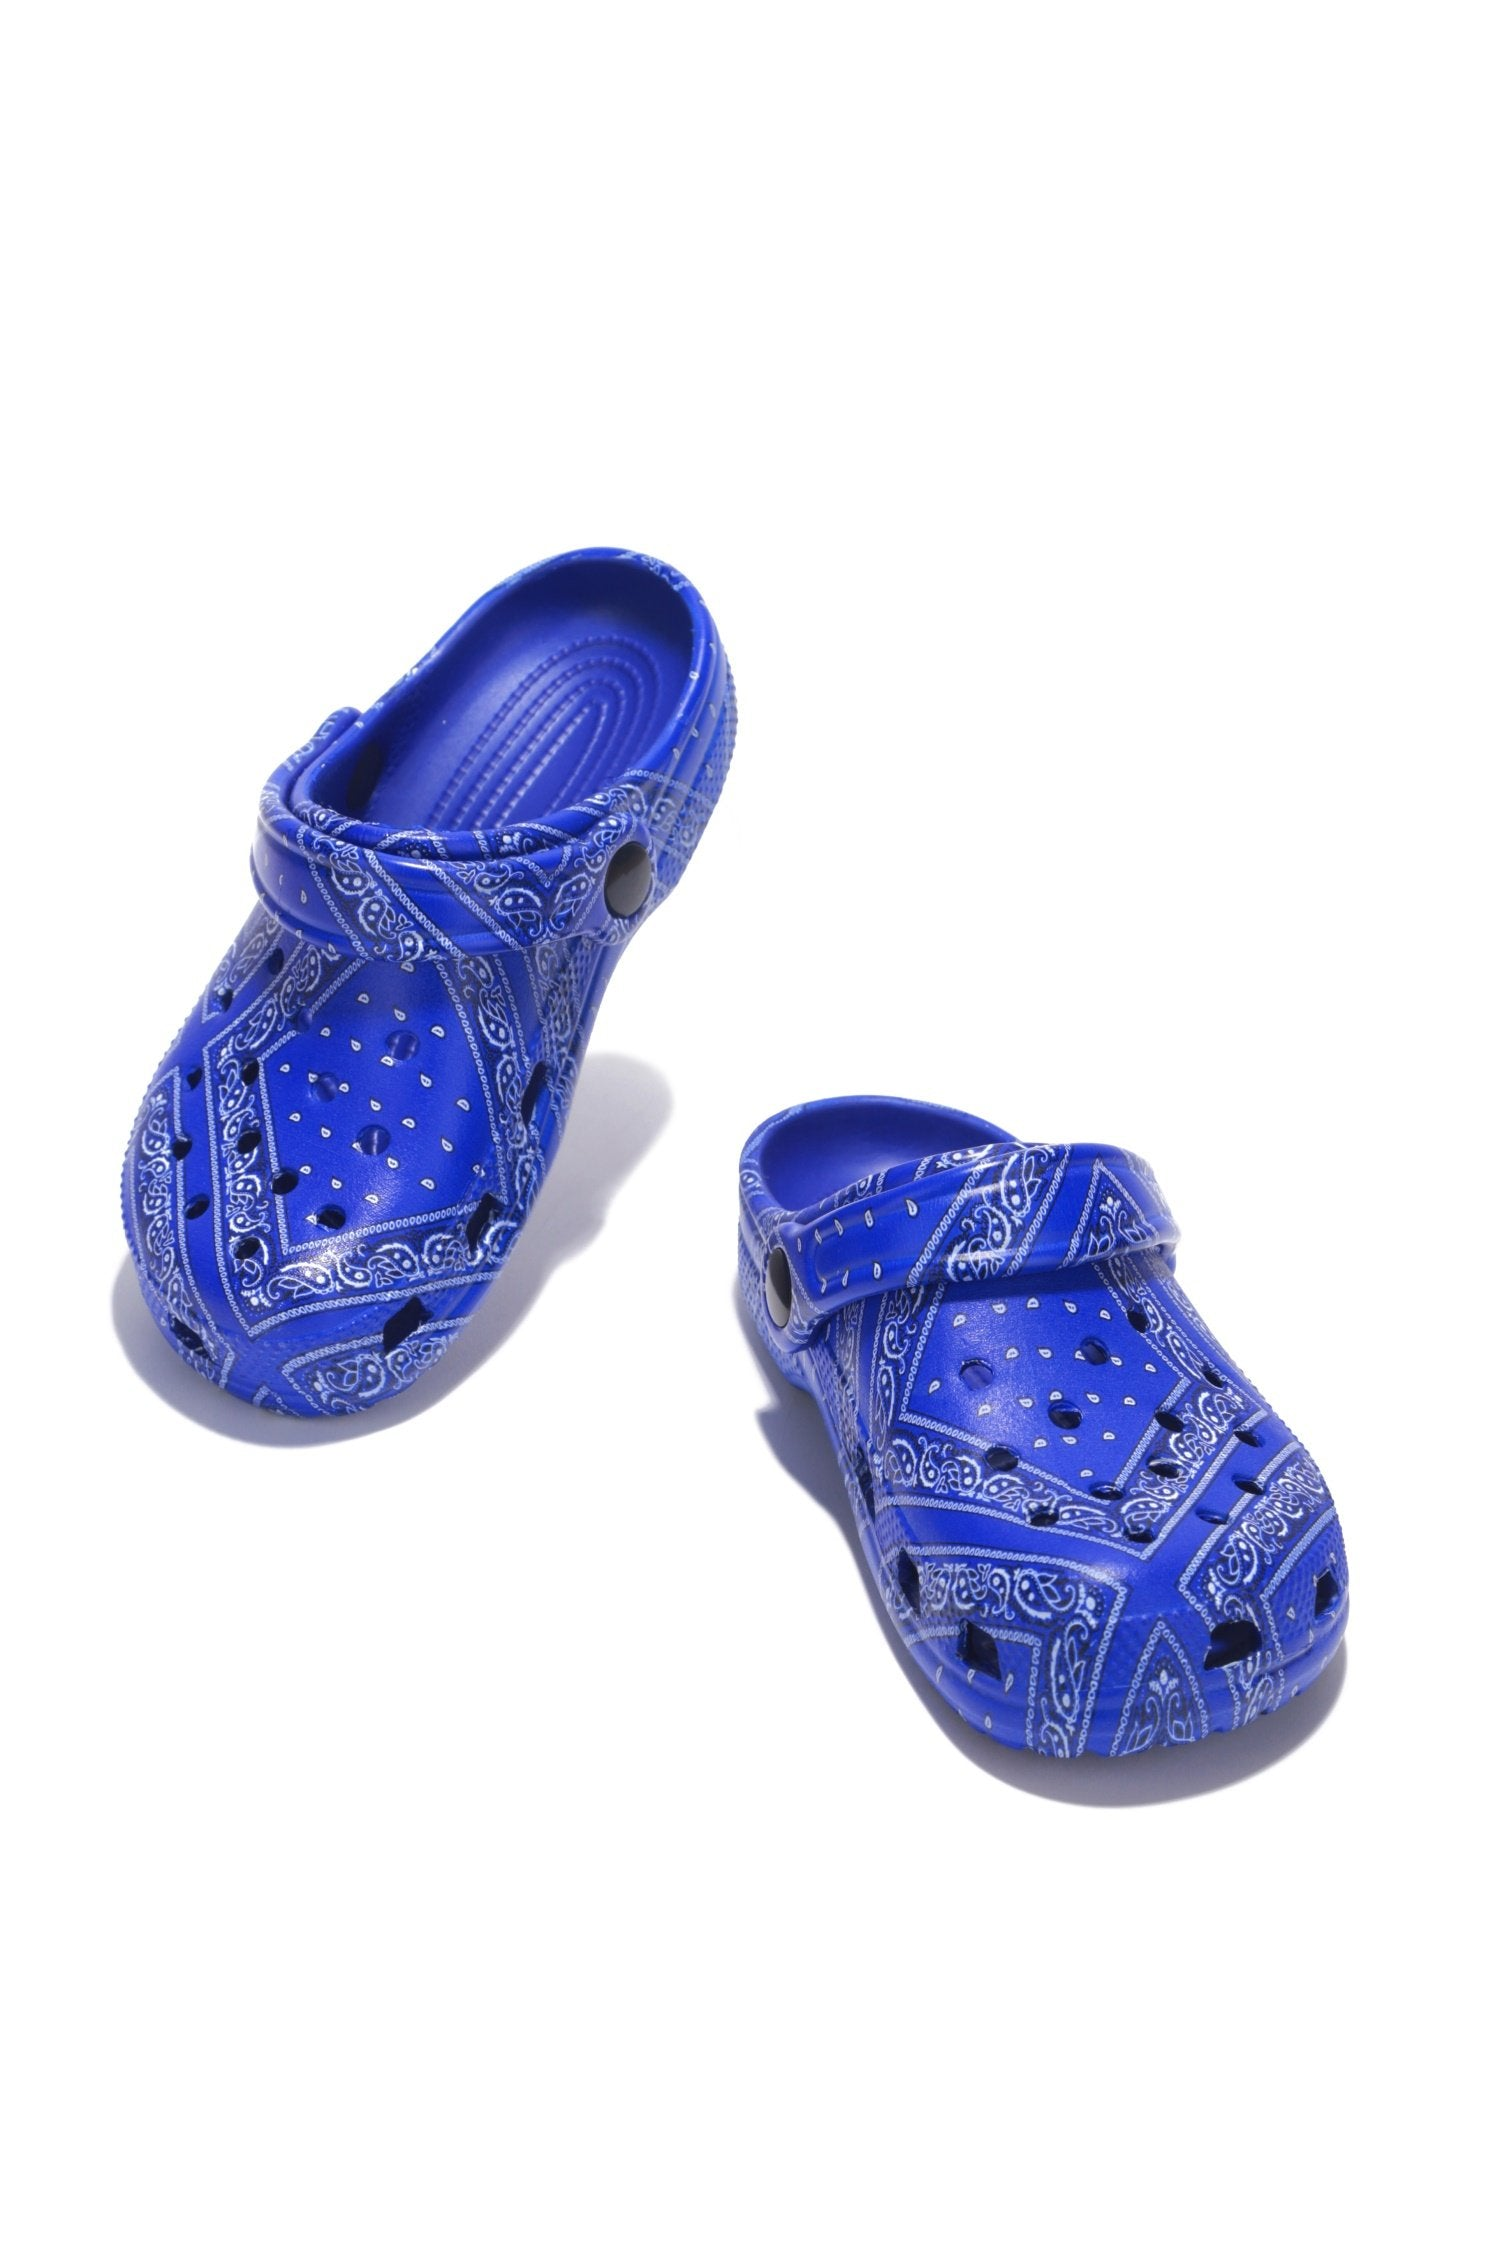 GARDENDOLLL KID'S ANKLE STRAP CUT OUT HOLE SANDAL-BLUE PRINT - LURE- Yorktown Mall